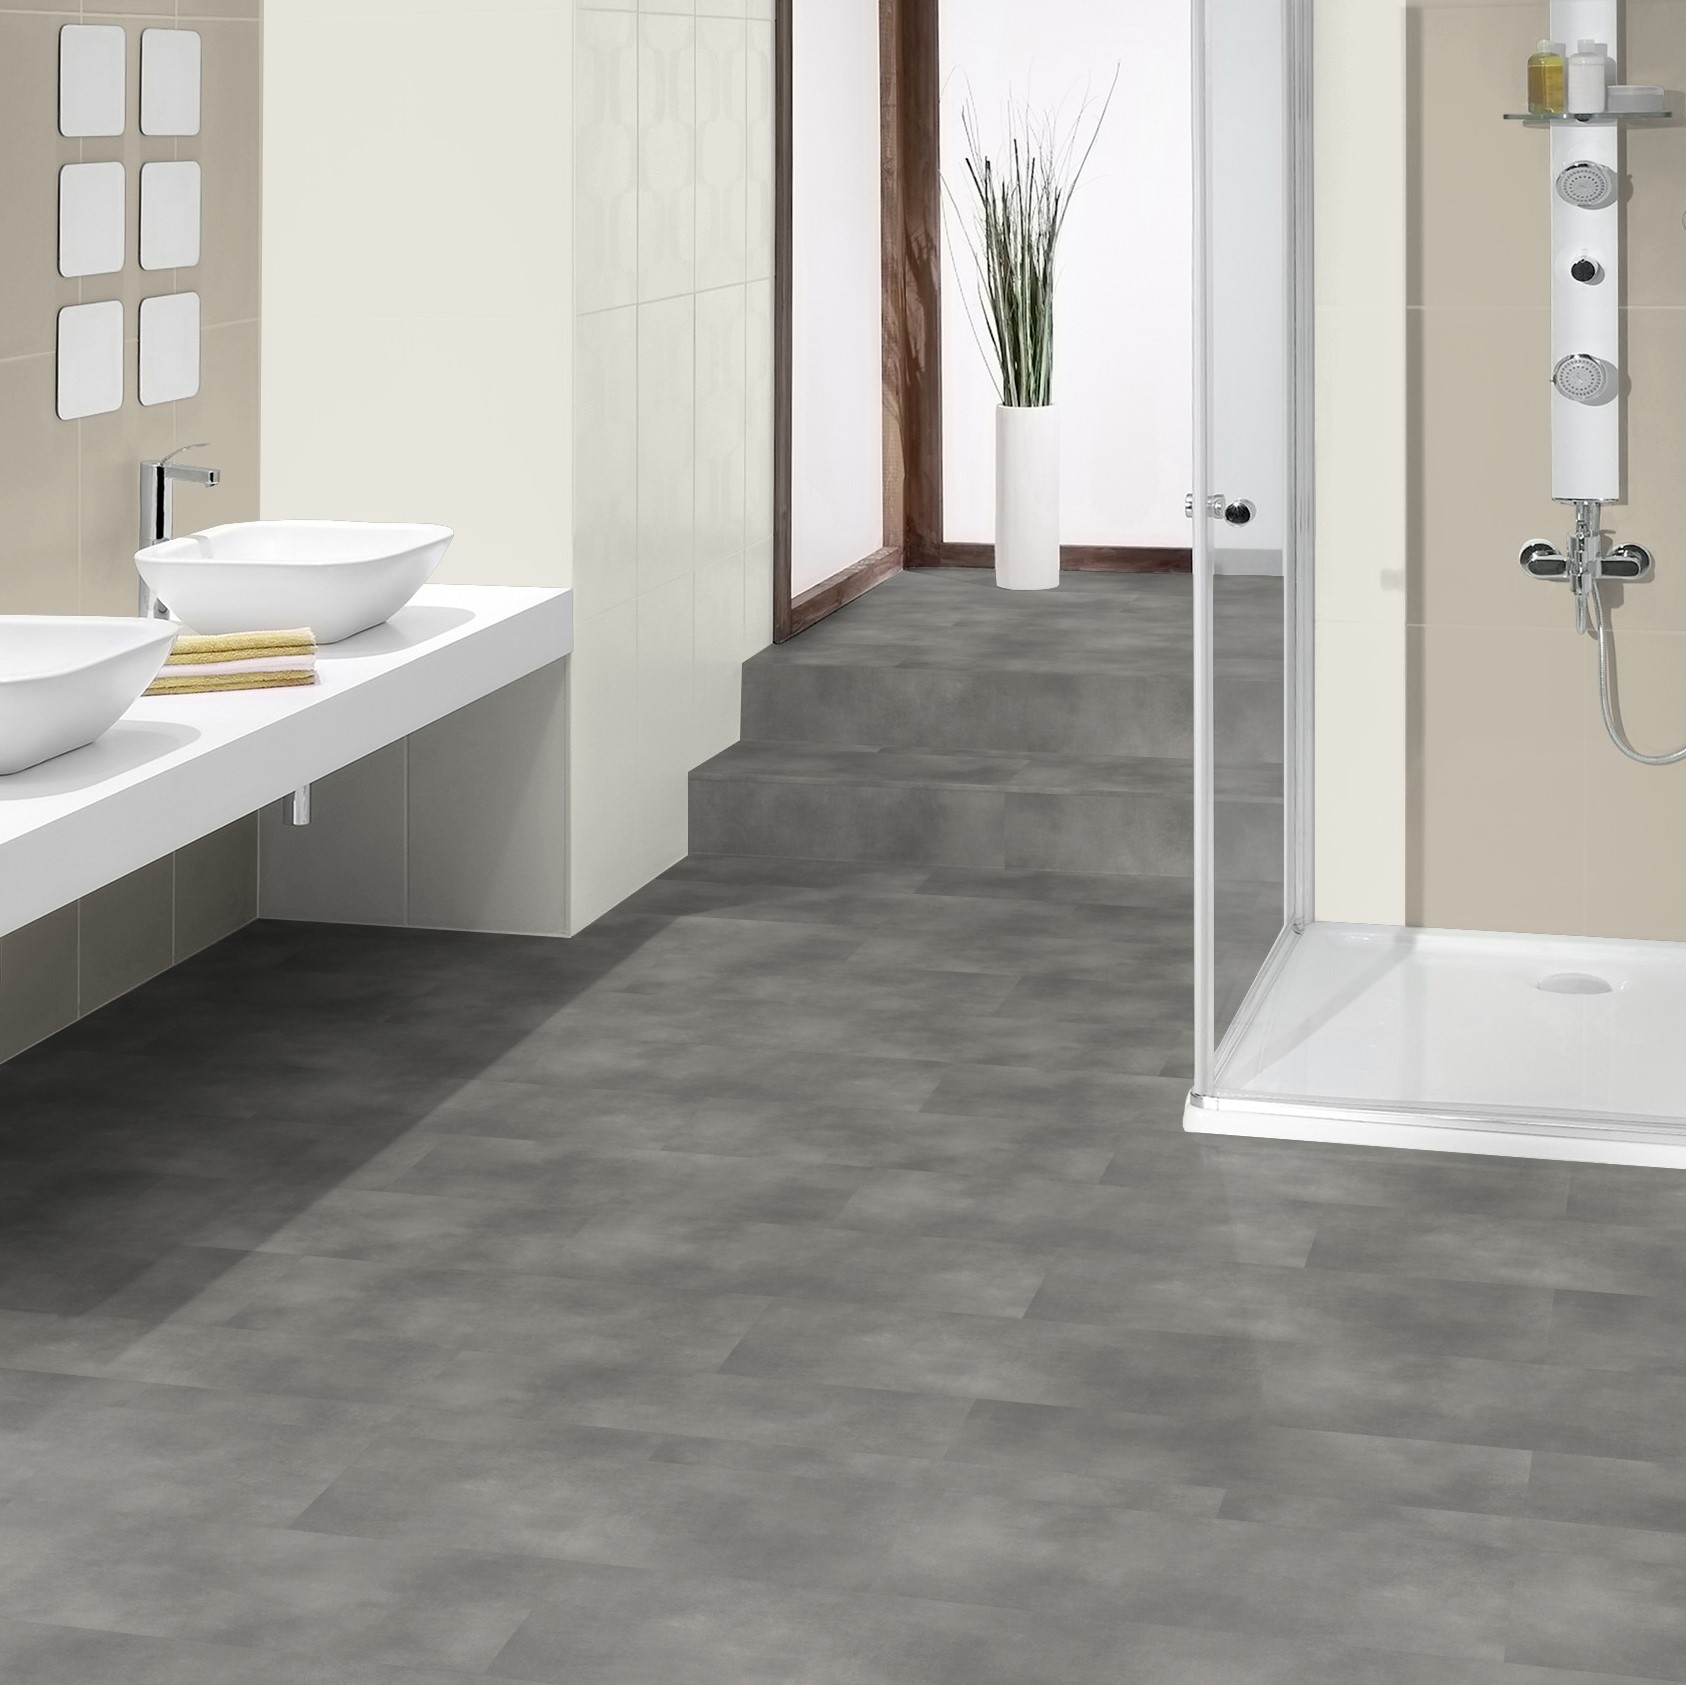 Buy Now For Less. Volume Discounts On All Tarkett Vinyl Flooring ...